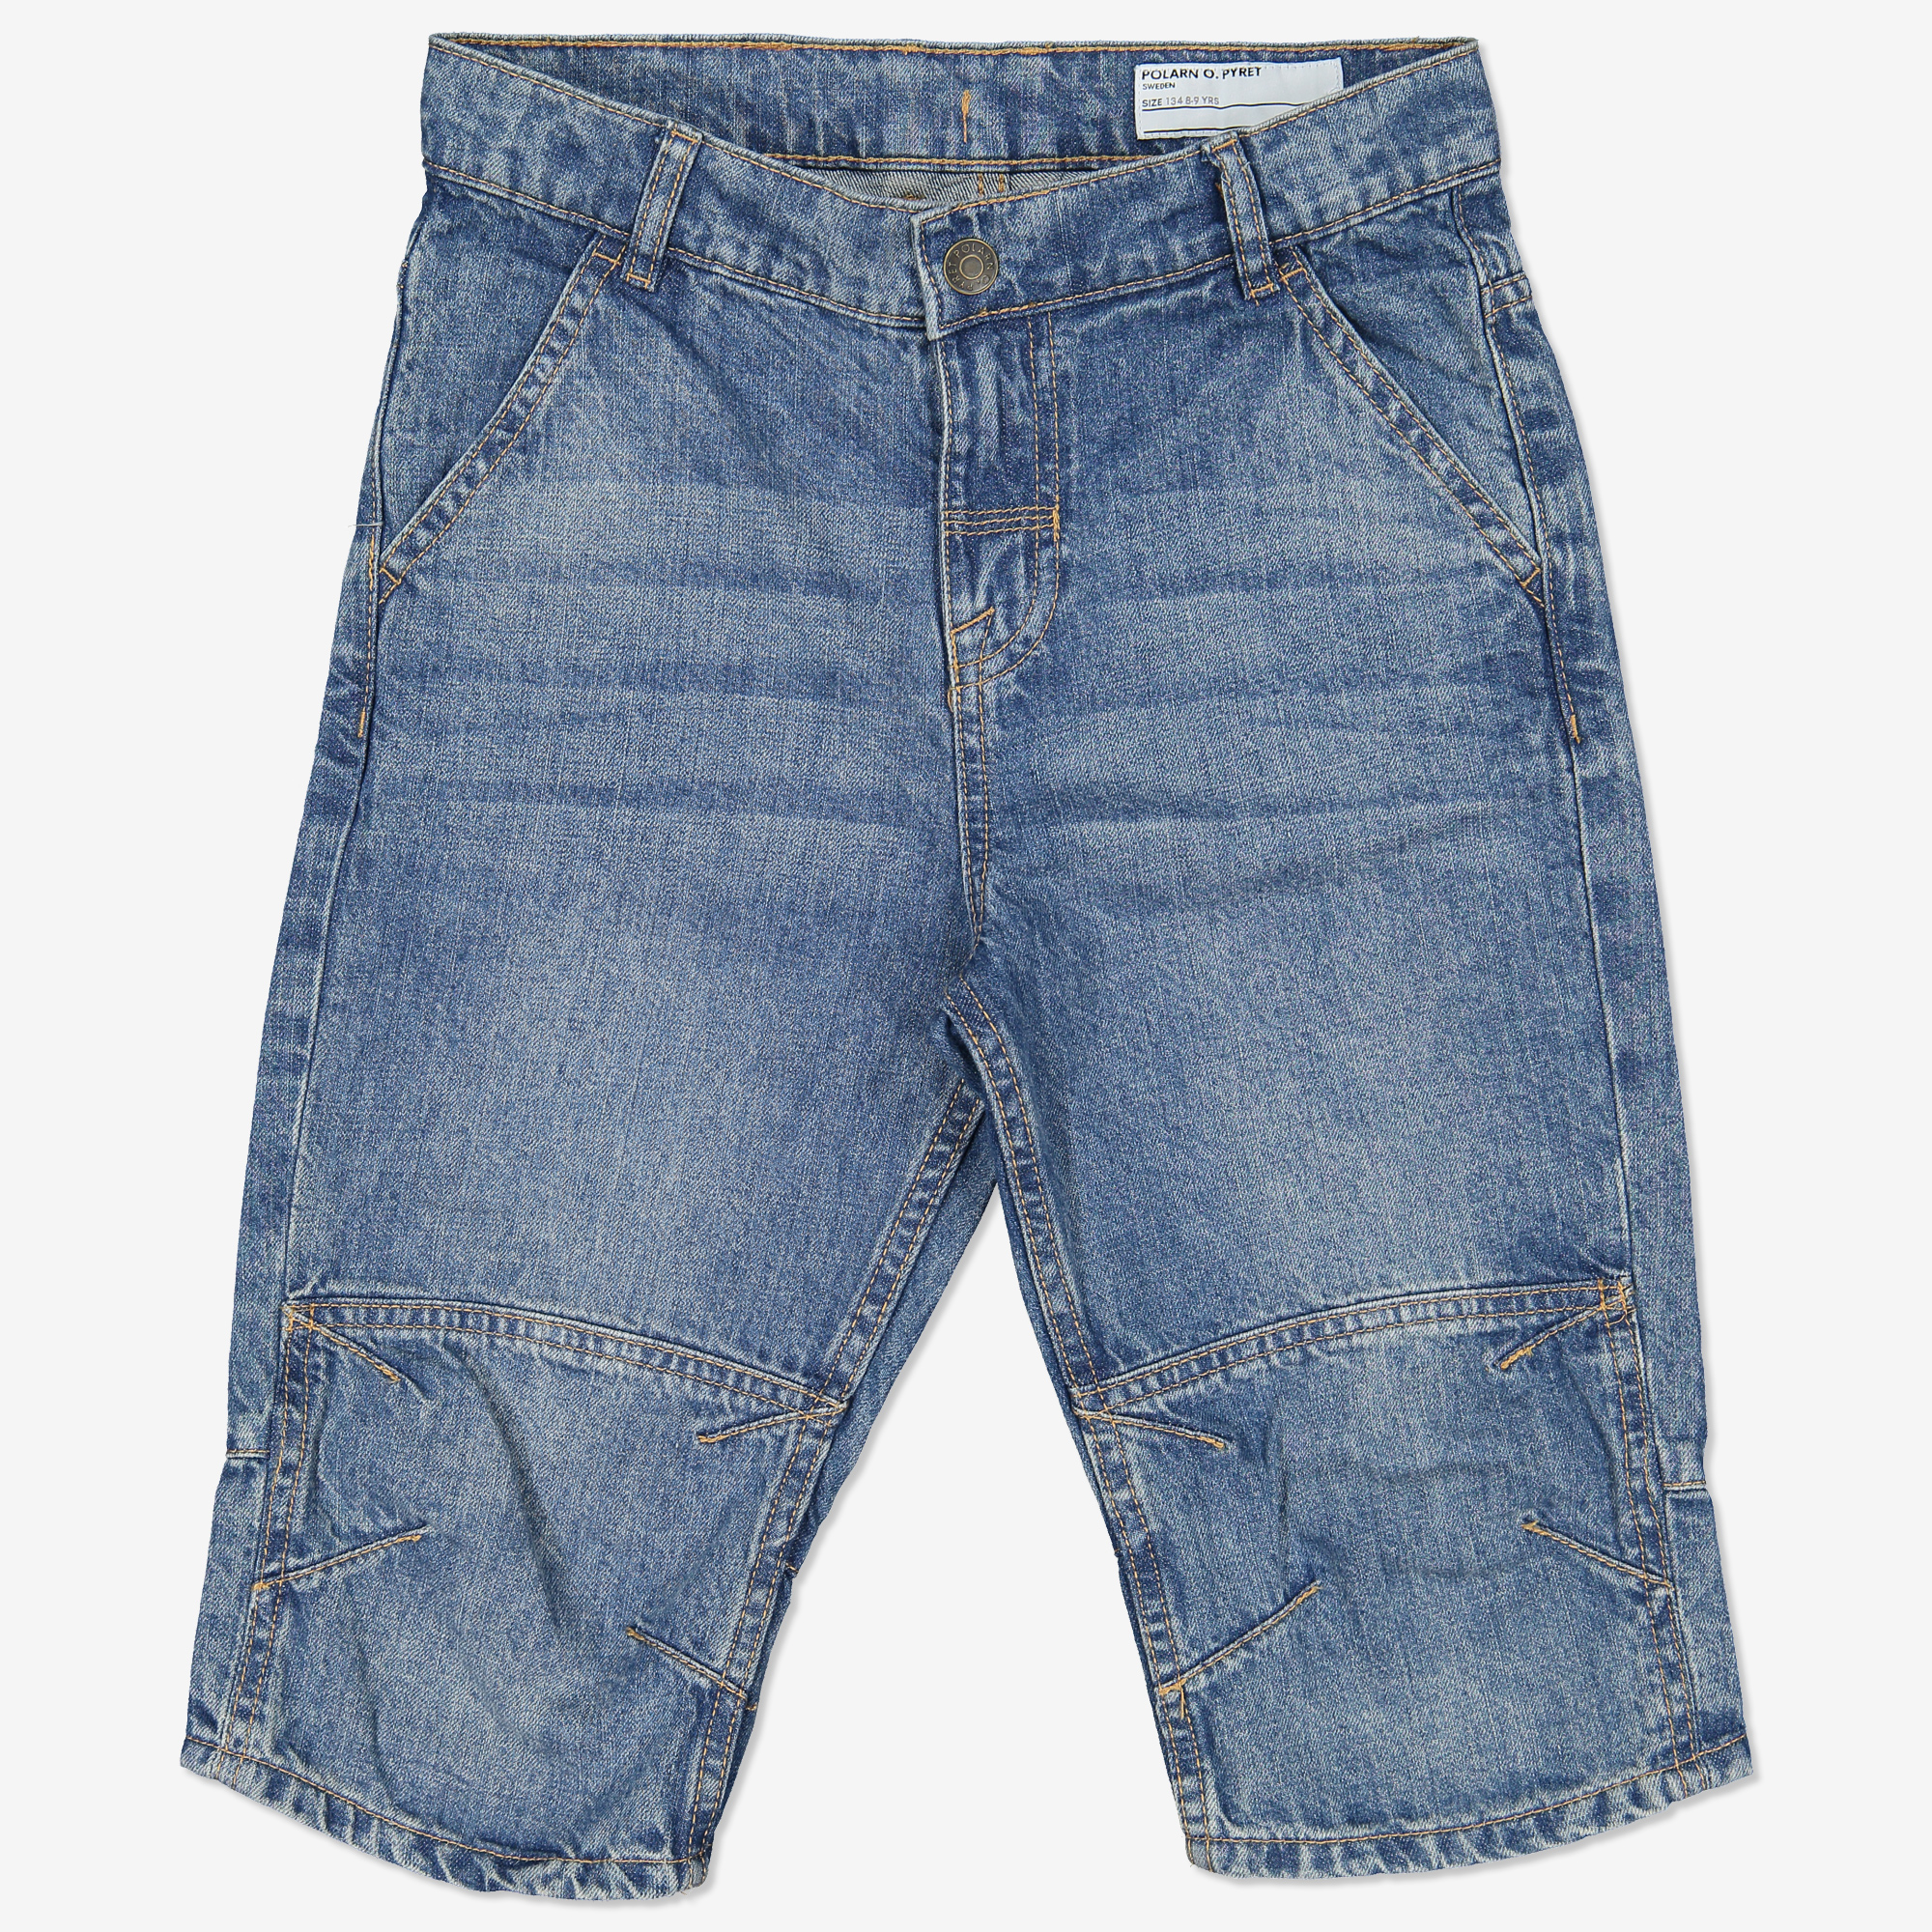 Ljus denim